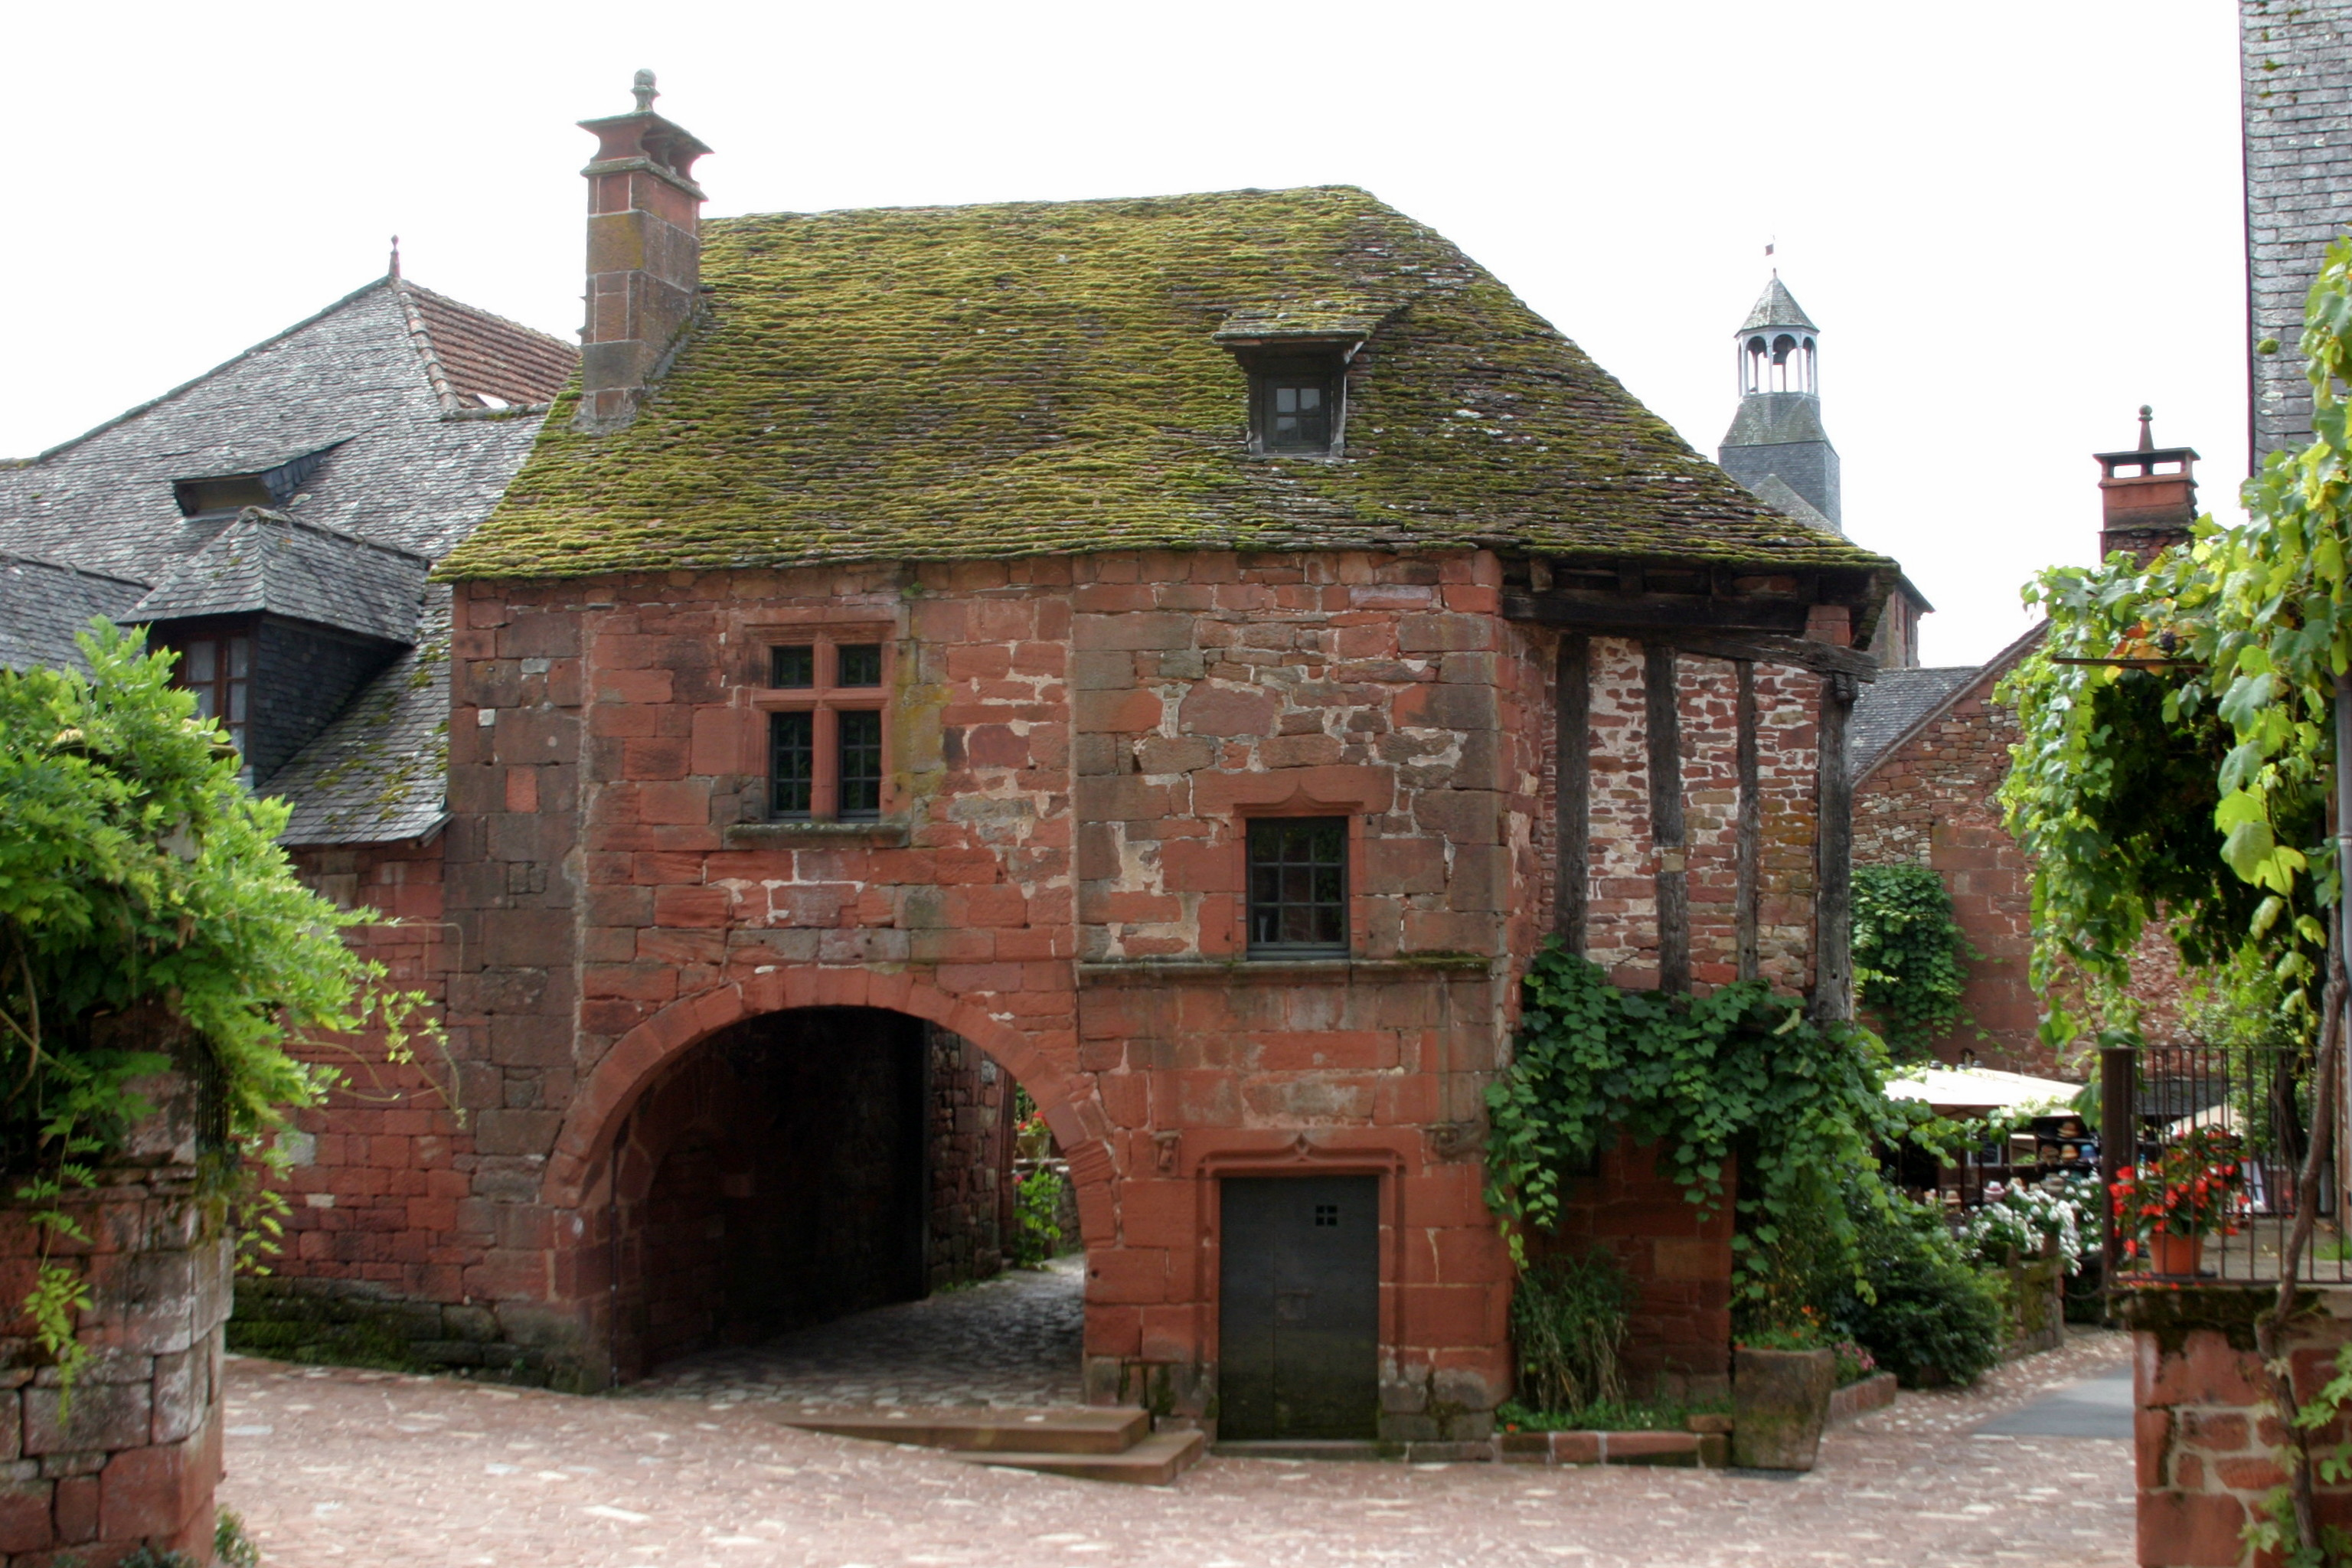 Collonges-la-Rouge, France - Archway